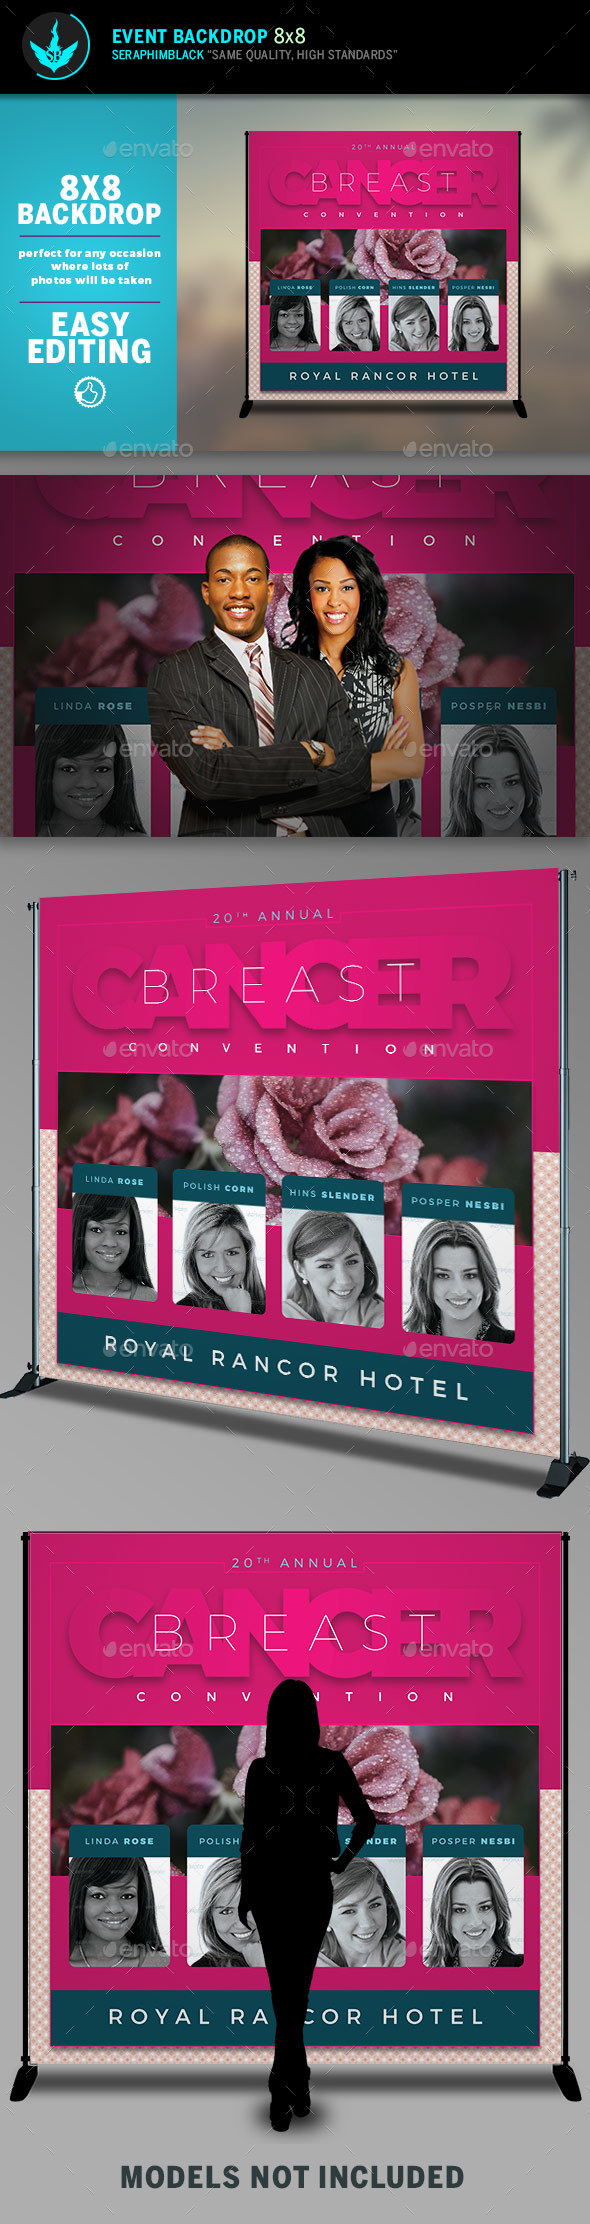 Breast Cancer Convention 8x8 Event Backdrop Template - Signage Print Templates